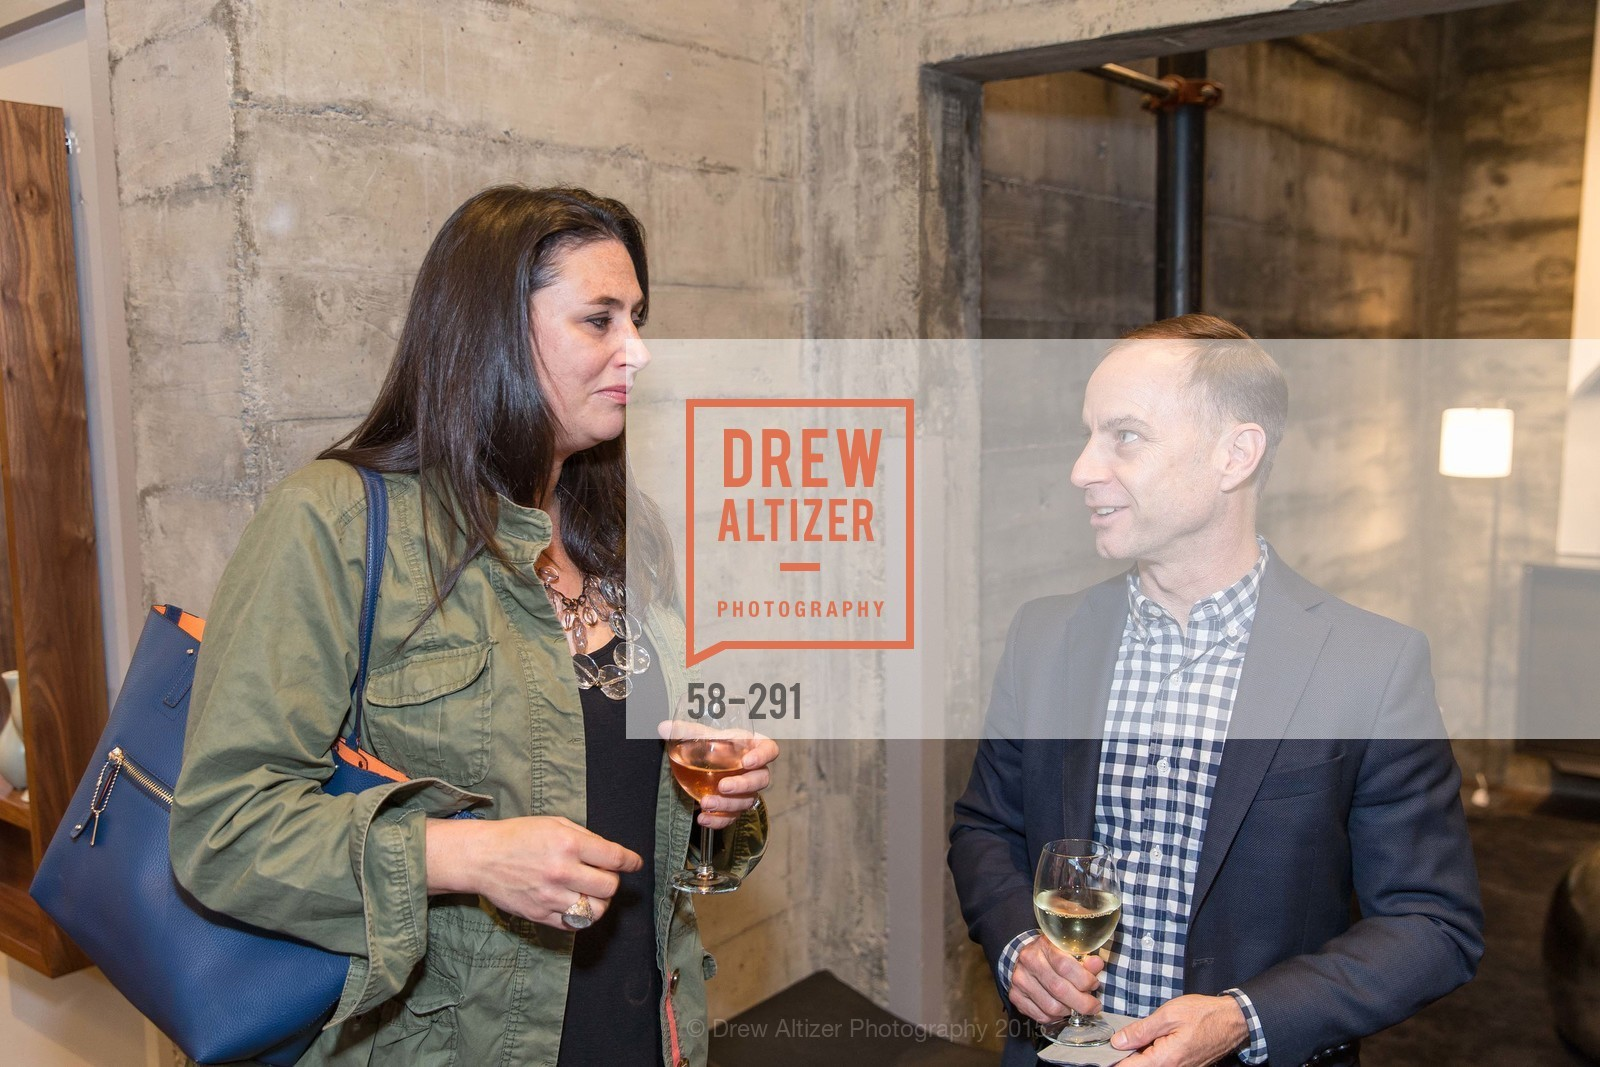 Extras, SFC&G for the Discover New Design Series with Room & Board and Alisa Carroll, September 16th, 2015, Photo,Drew Altizer, Drew Altizer Photography, full-service agency, private events, San Francisco photographer, photographer california